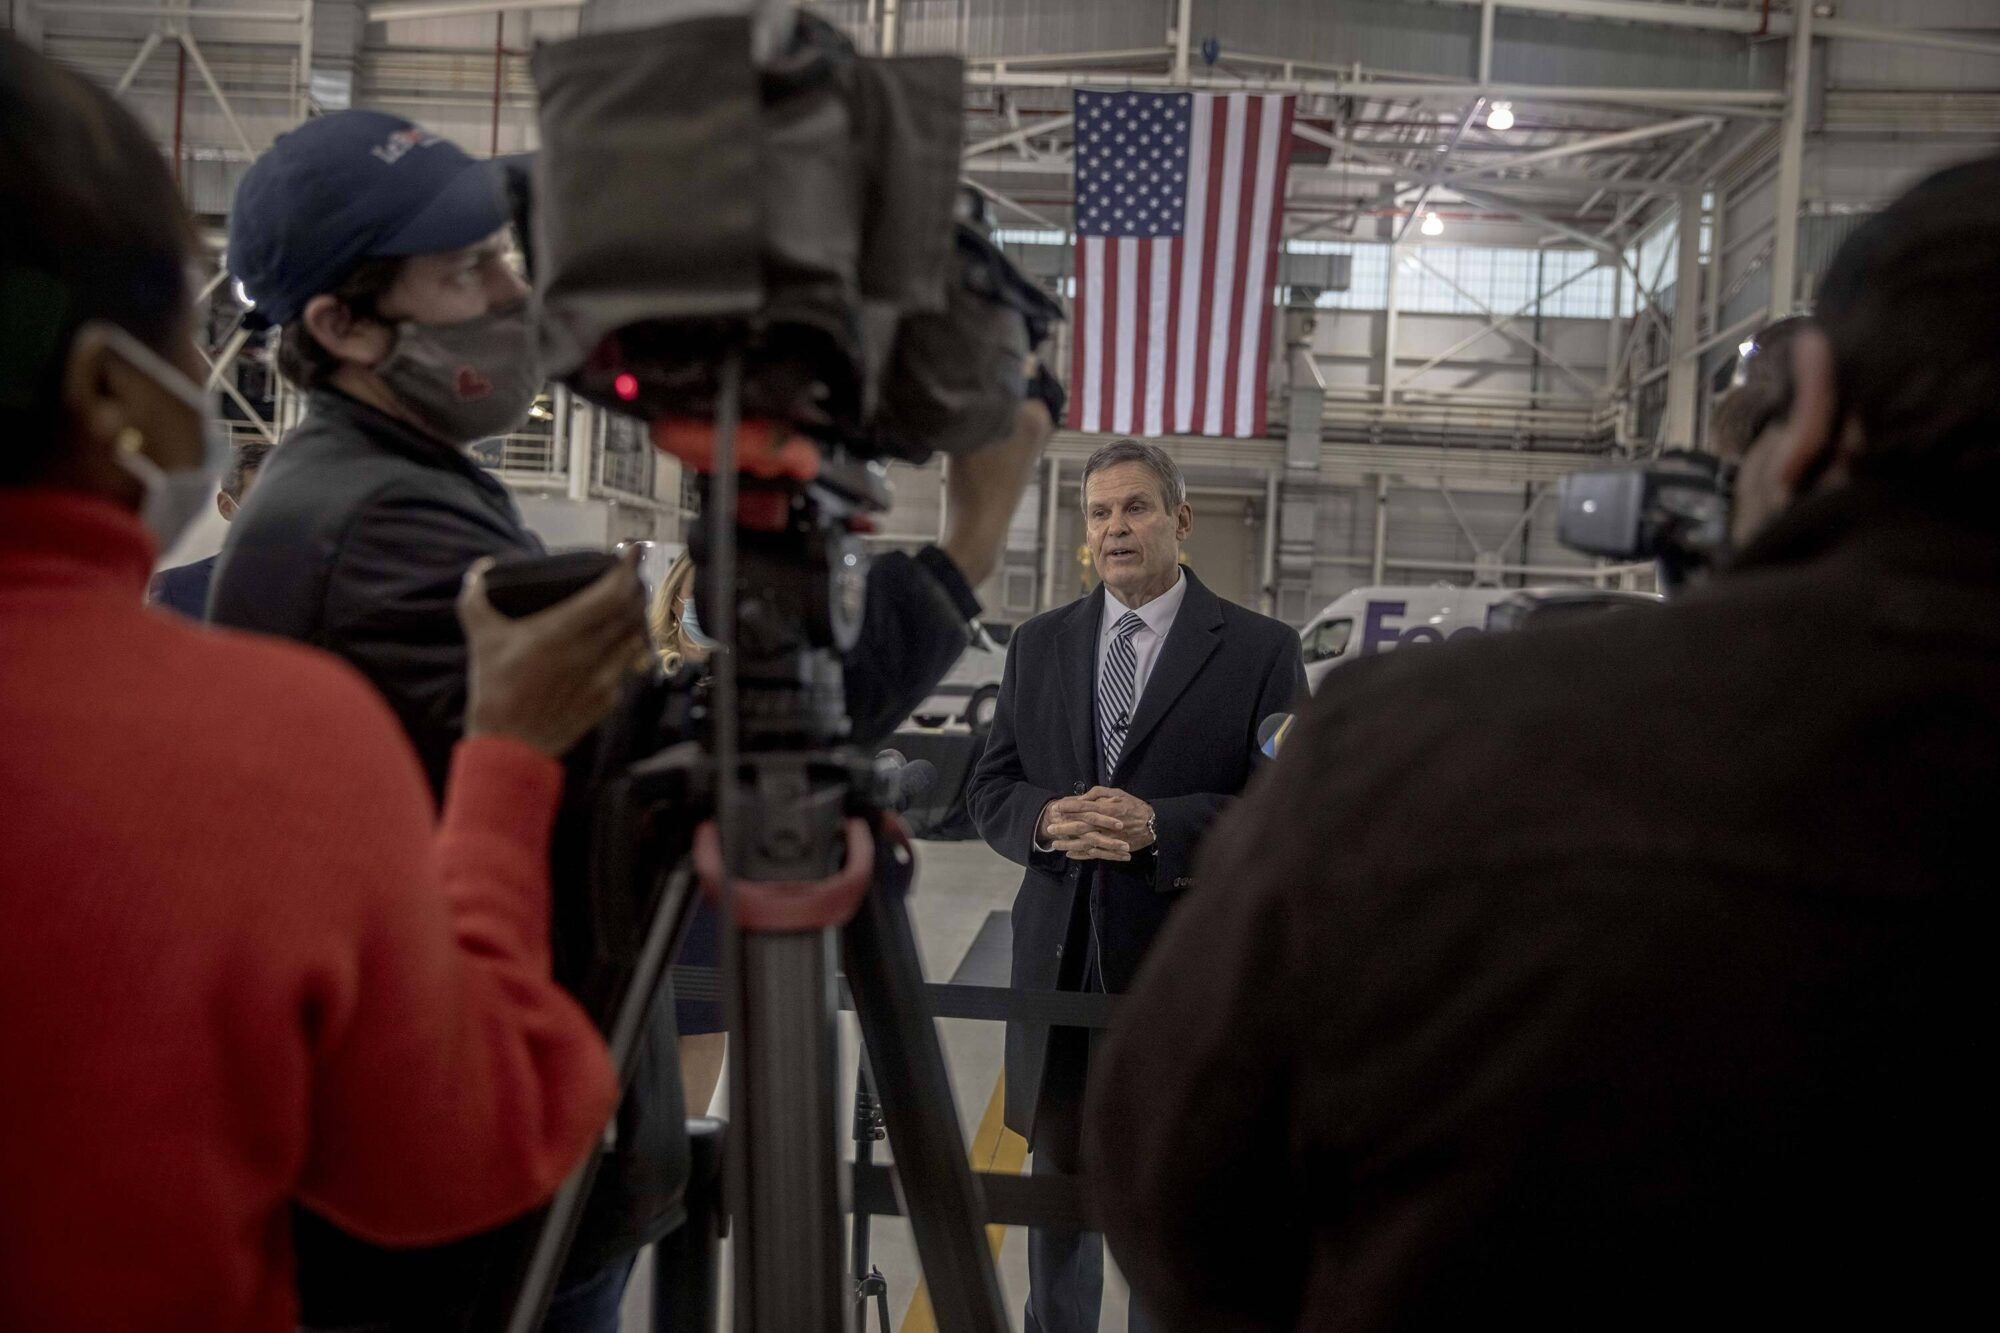 Tennessee Gov. Bill Lee speaks to the media following a Dec. 3 roundtable discussion about vaccine distribution that included FedEx executives, Vice President Mike Pence and health officials.